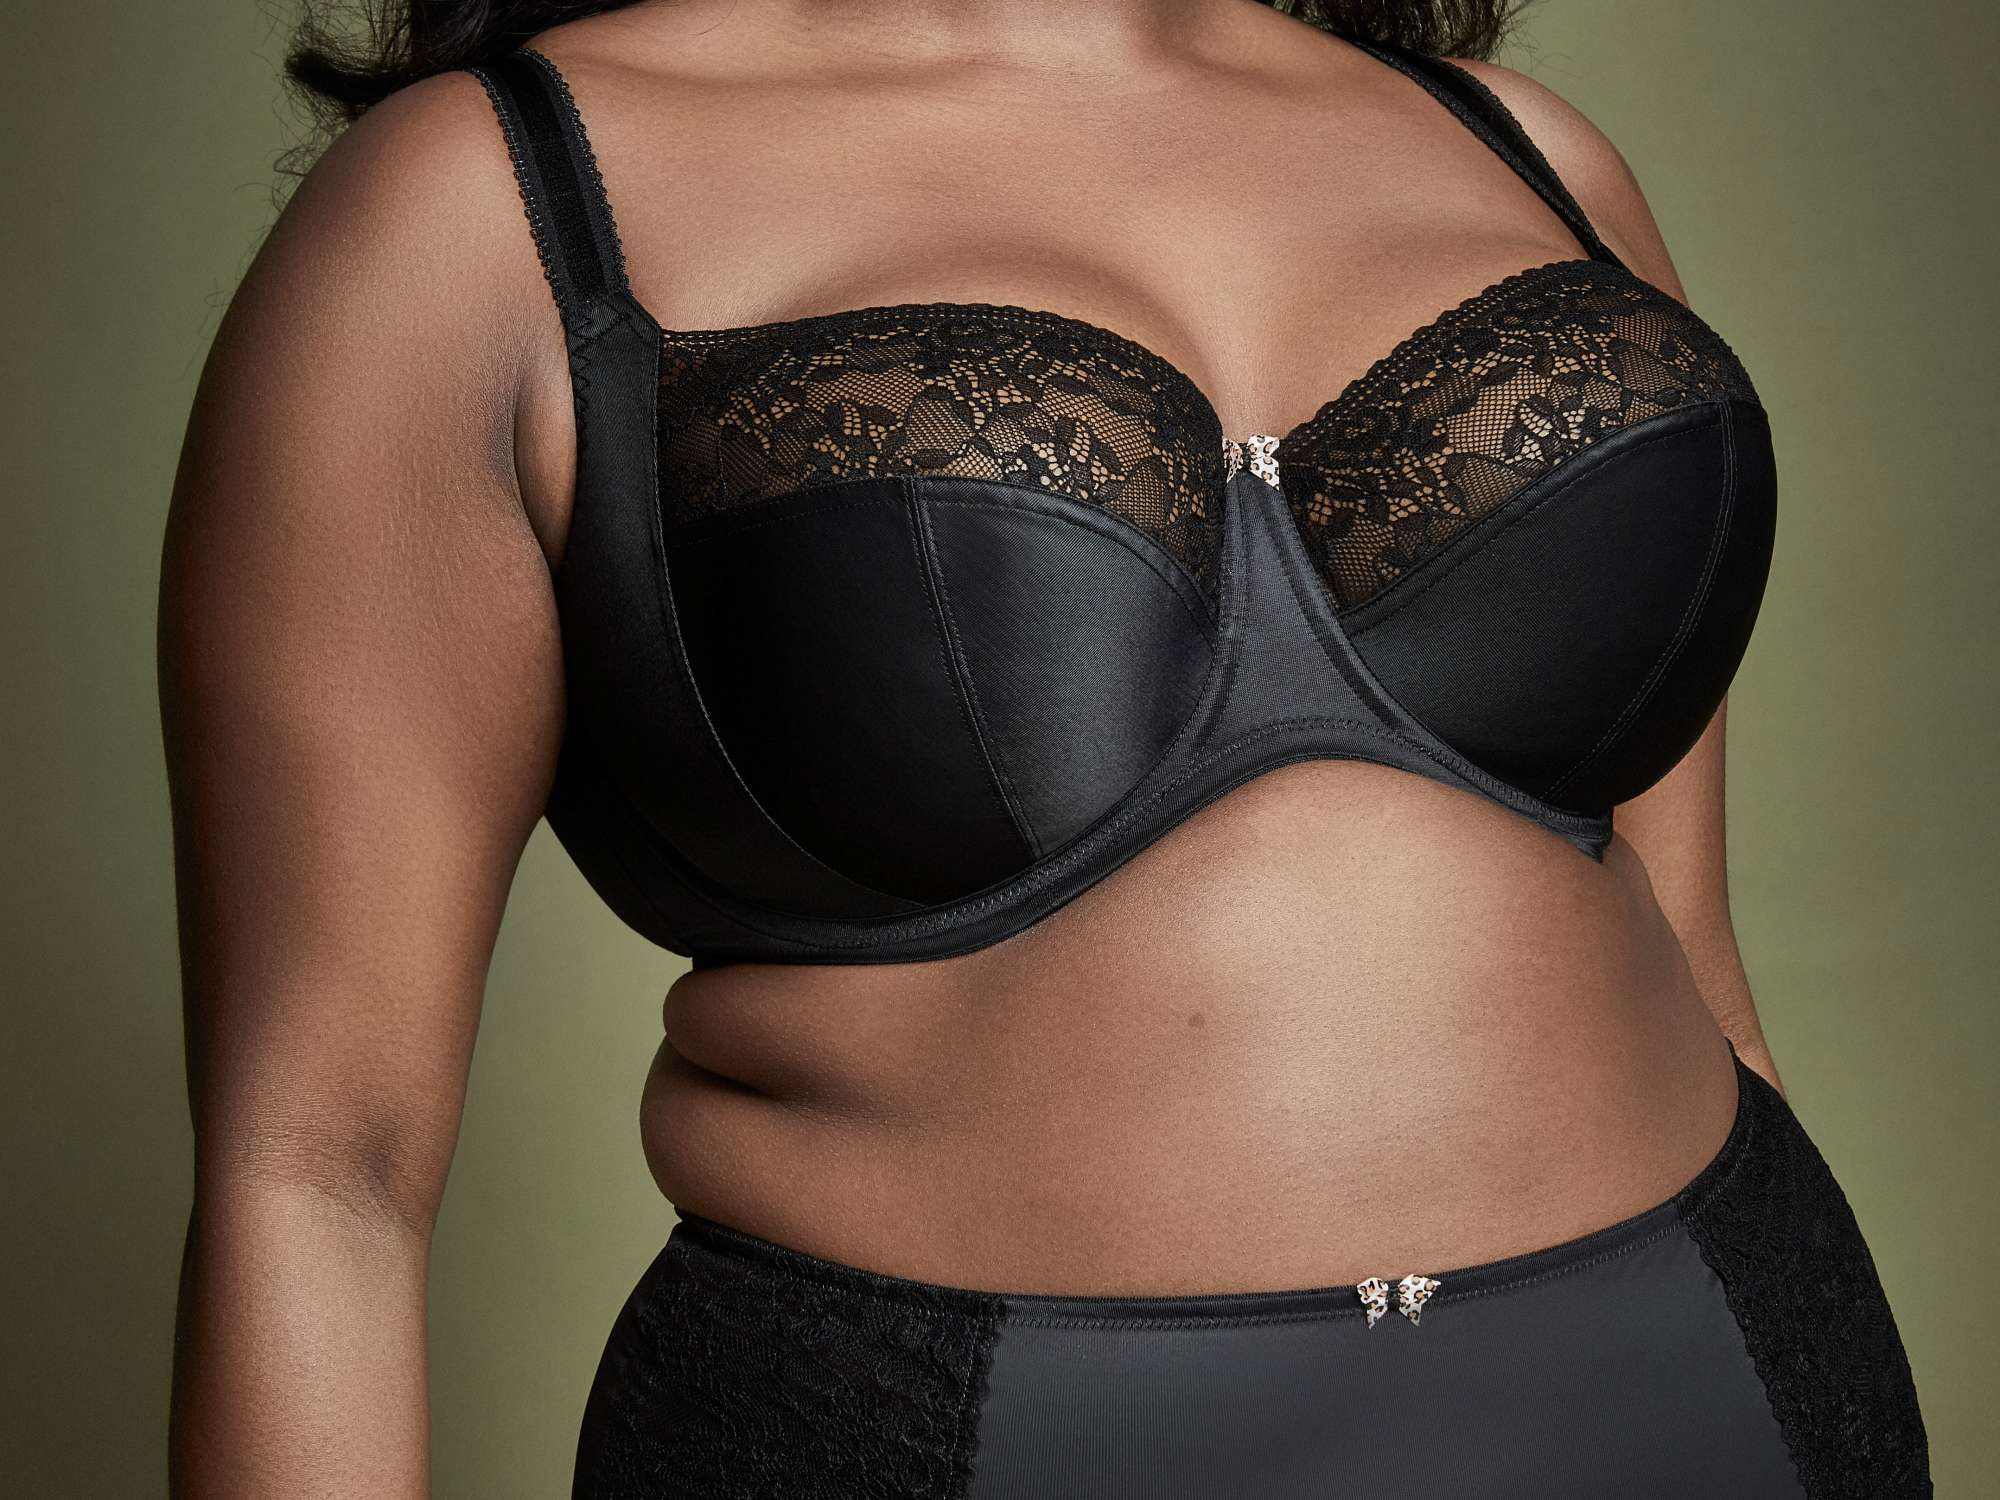 Sculptresse ChiChi in Black by Panache LIngerie